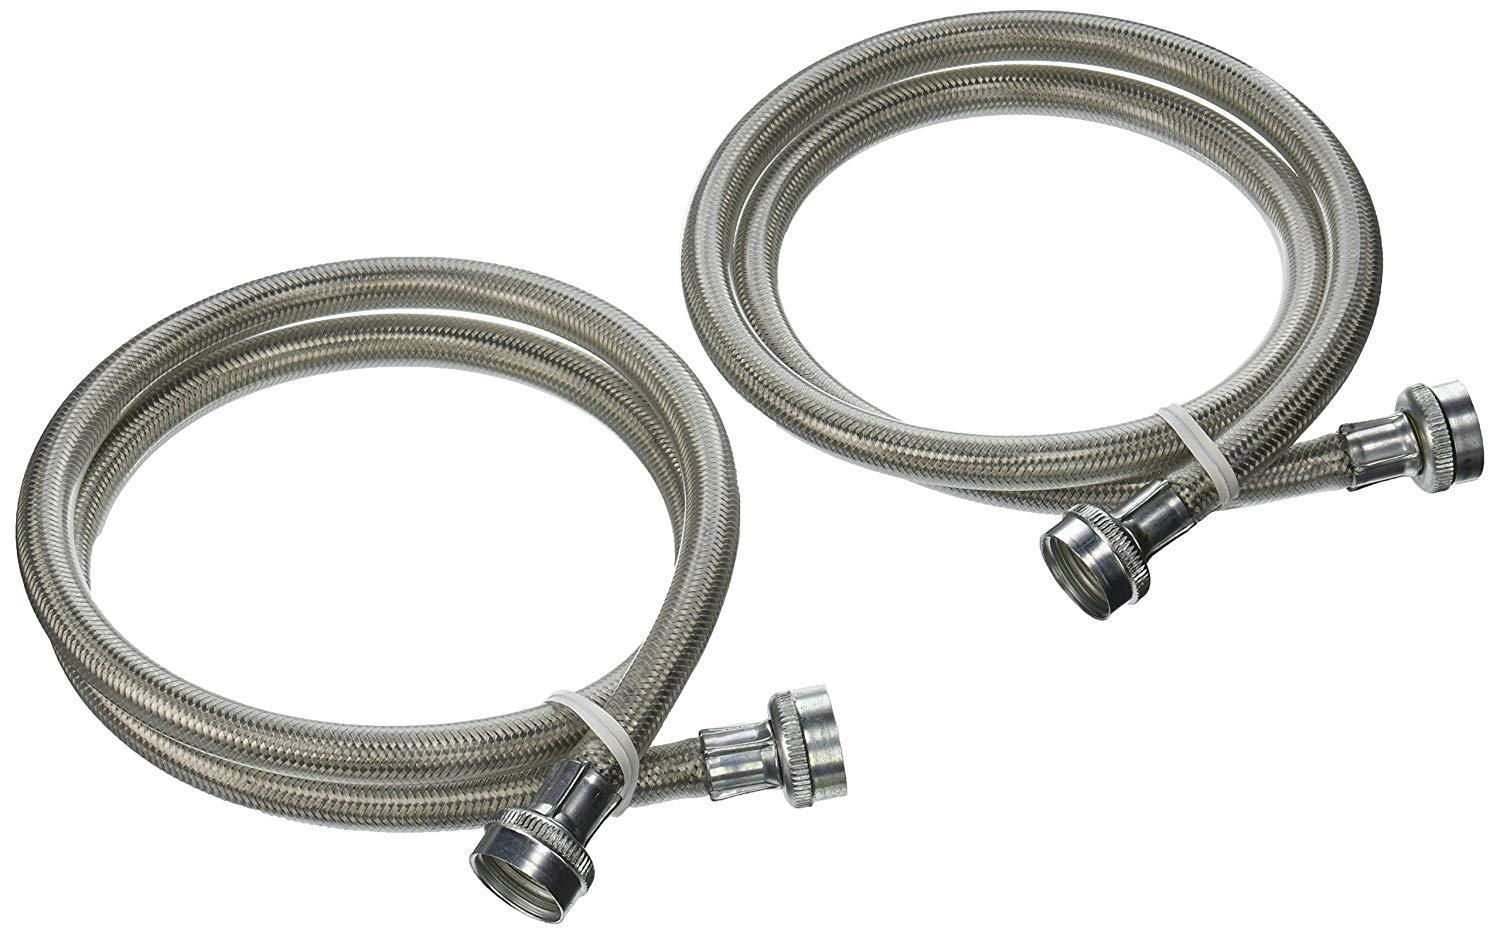 Parts And Accessories 99697 2 Universal Stainless Steel Washing Machine Braided Fill Hoses Hot Cold Oem 4ft Stainless Steel Washing Machine Steel Stainless